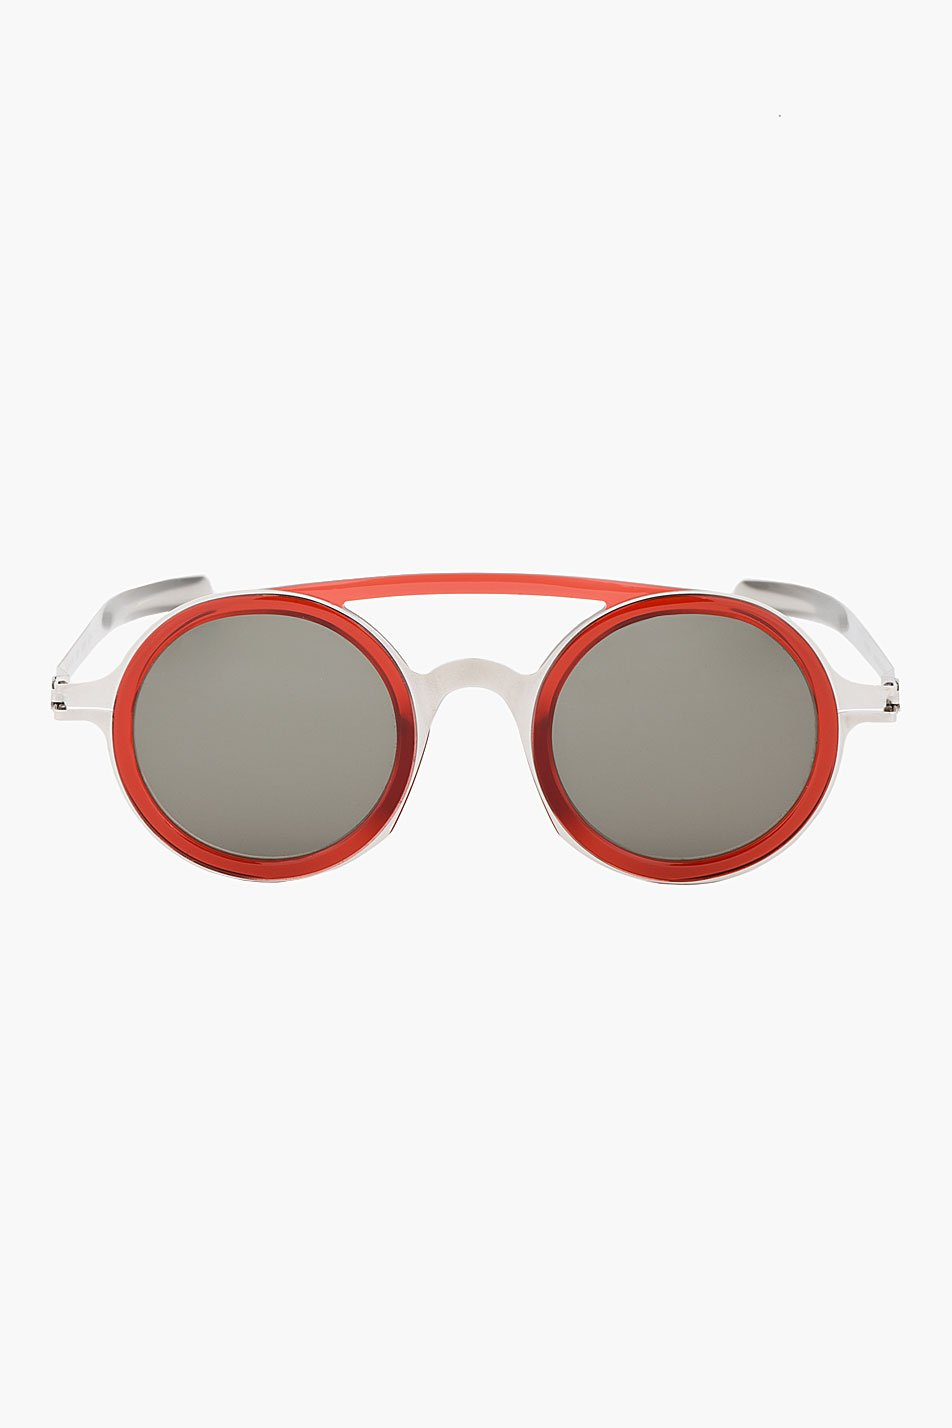 Damir doma silver and red round dd03 mykita edition sunglasses